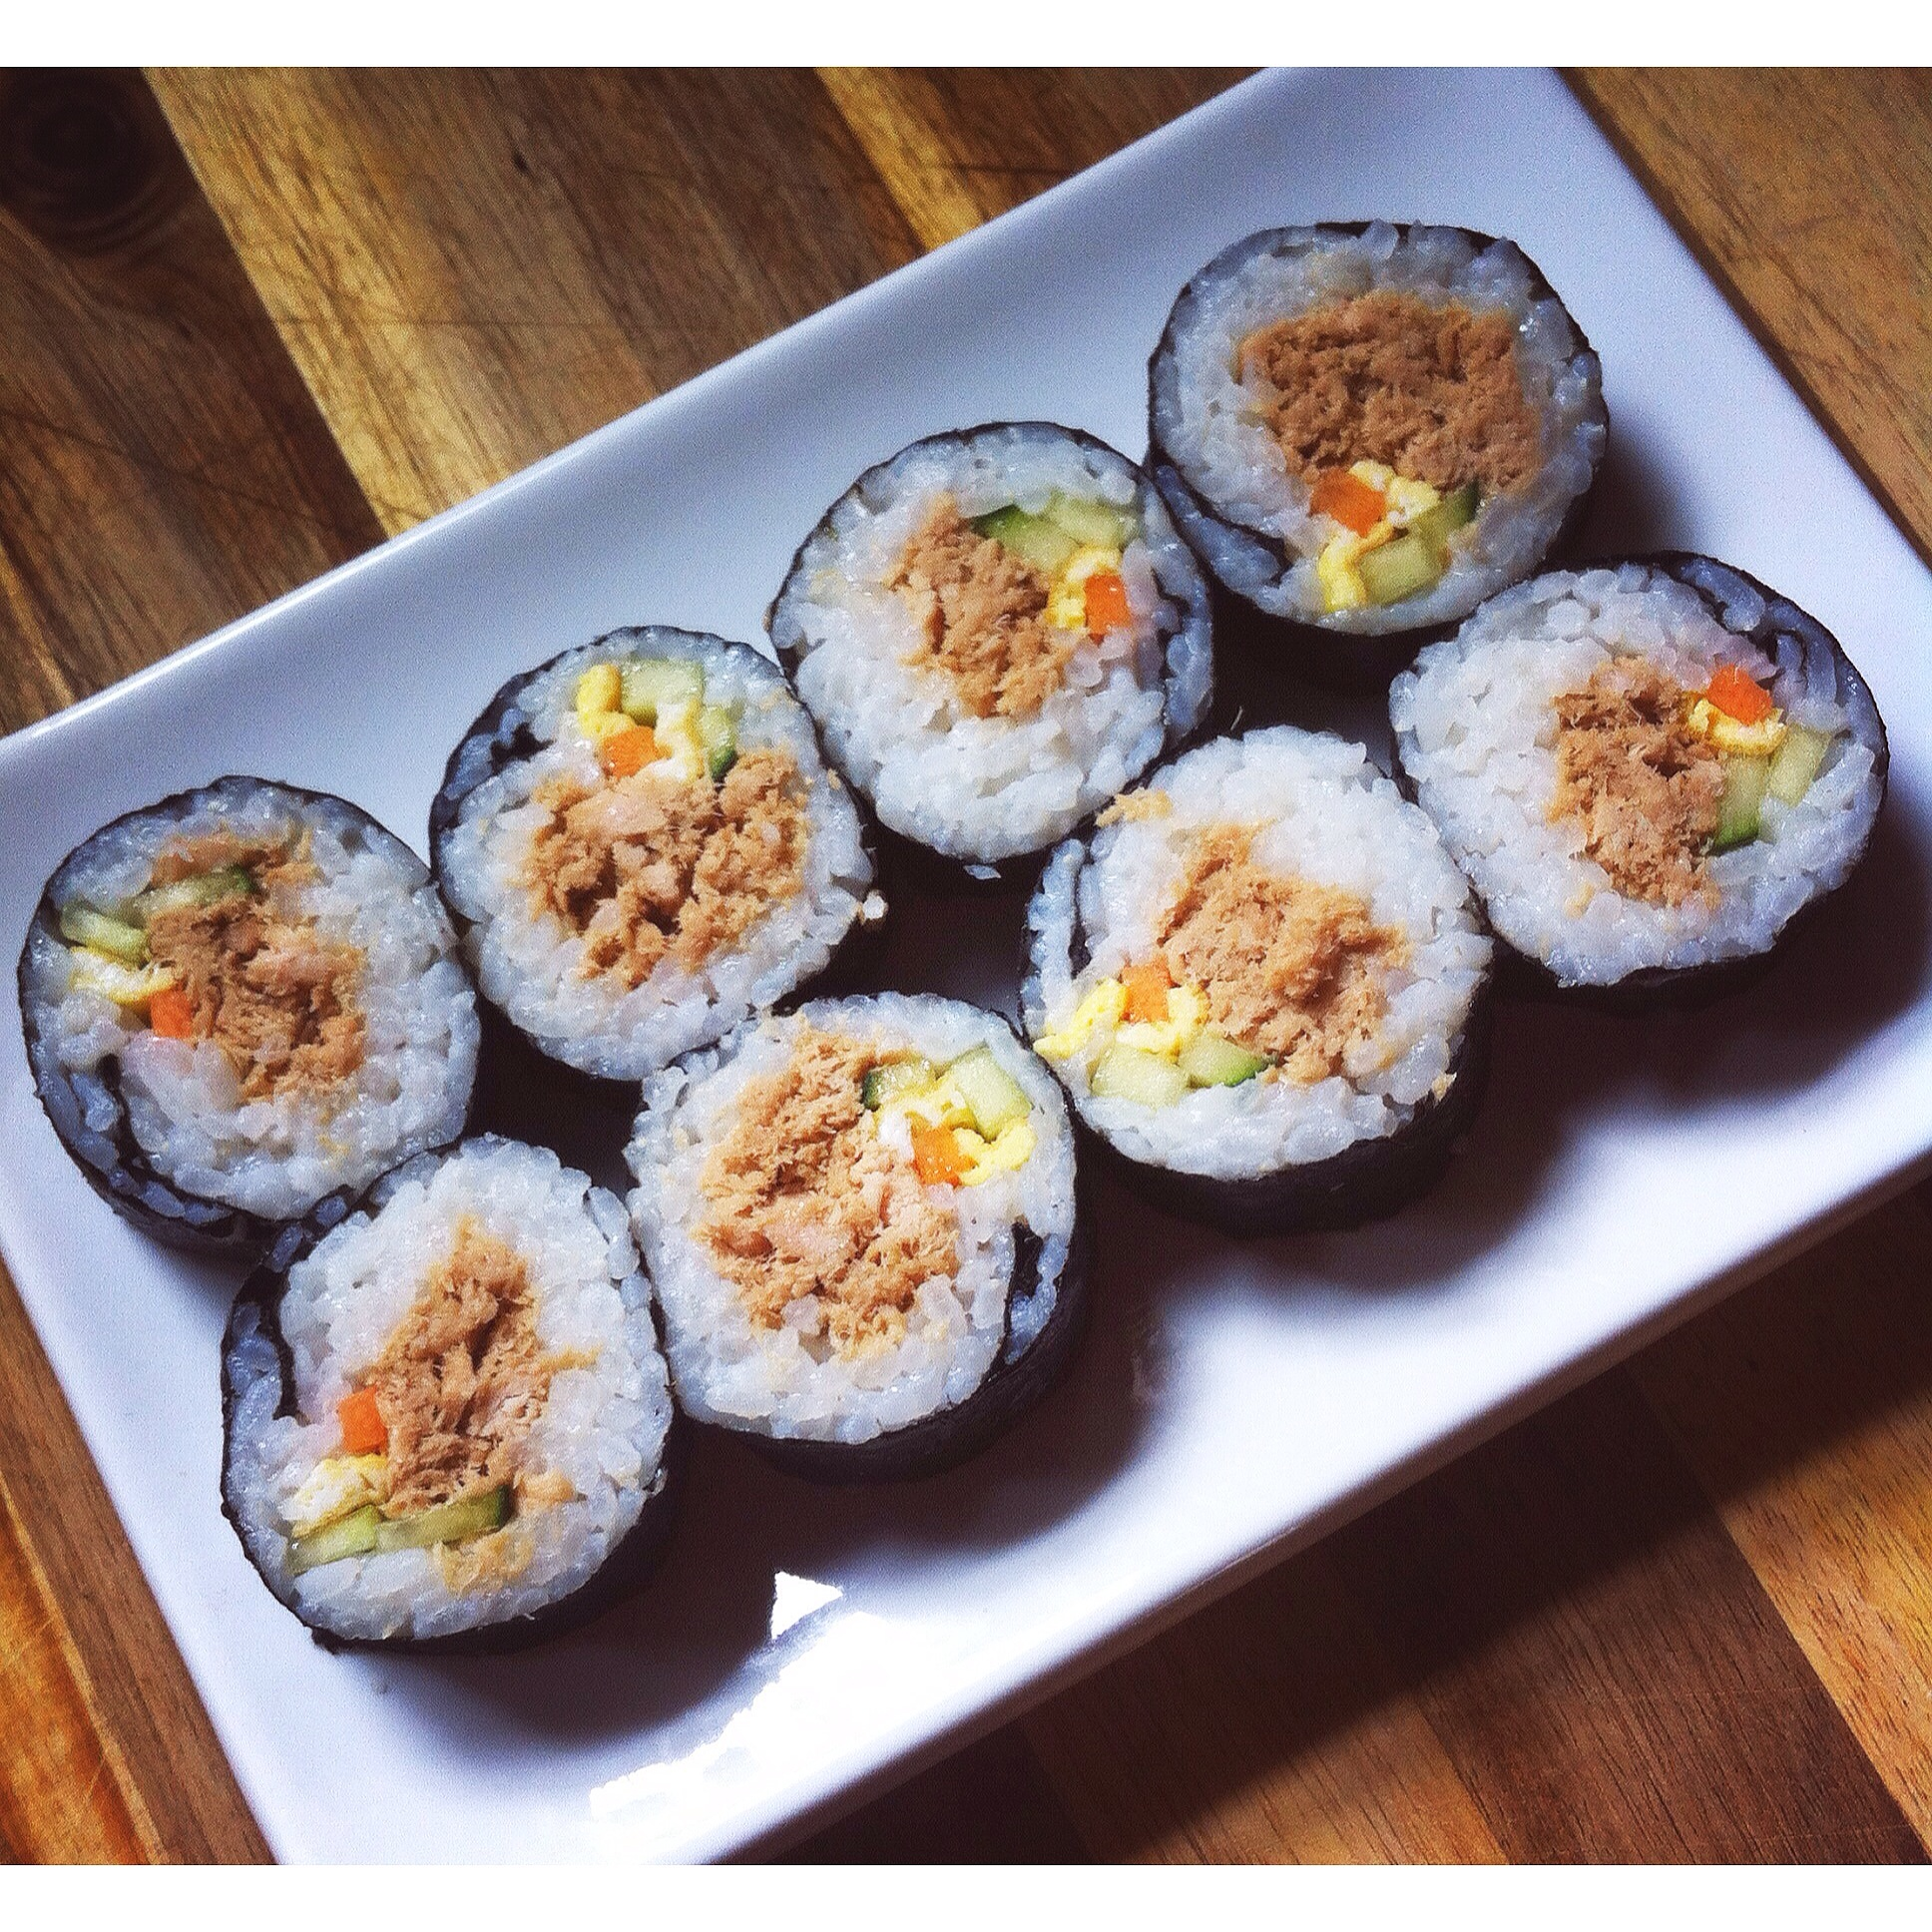 Day to Day Life: Week 6 | Forbidden Rice Blog | photography, Ashland Oregon, maki sushi